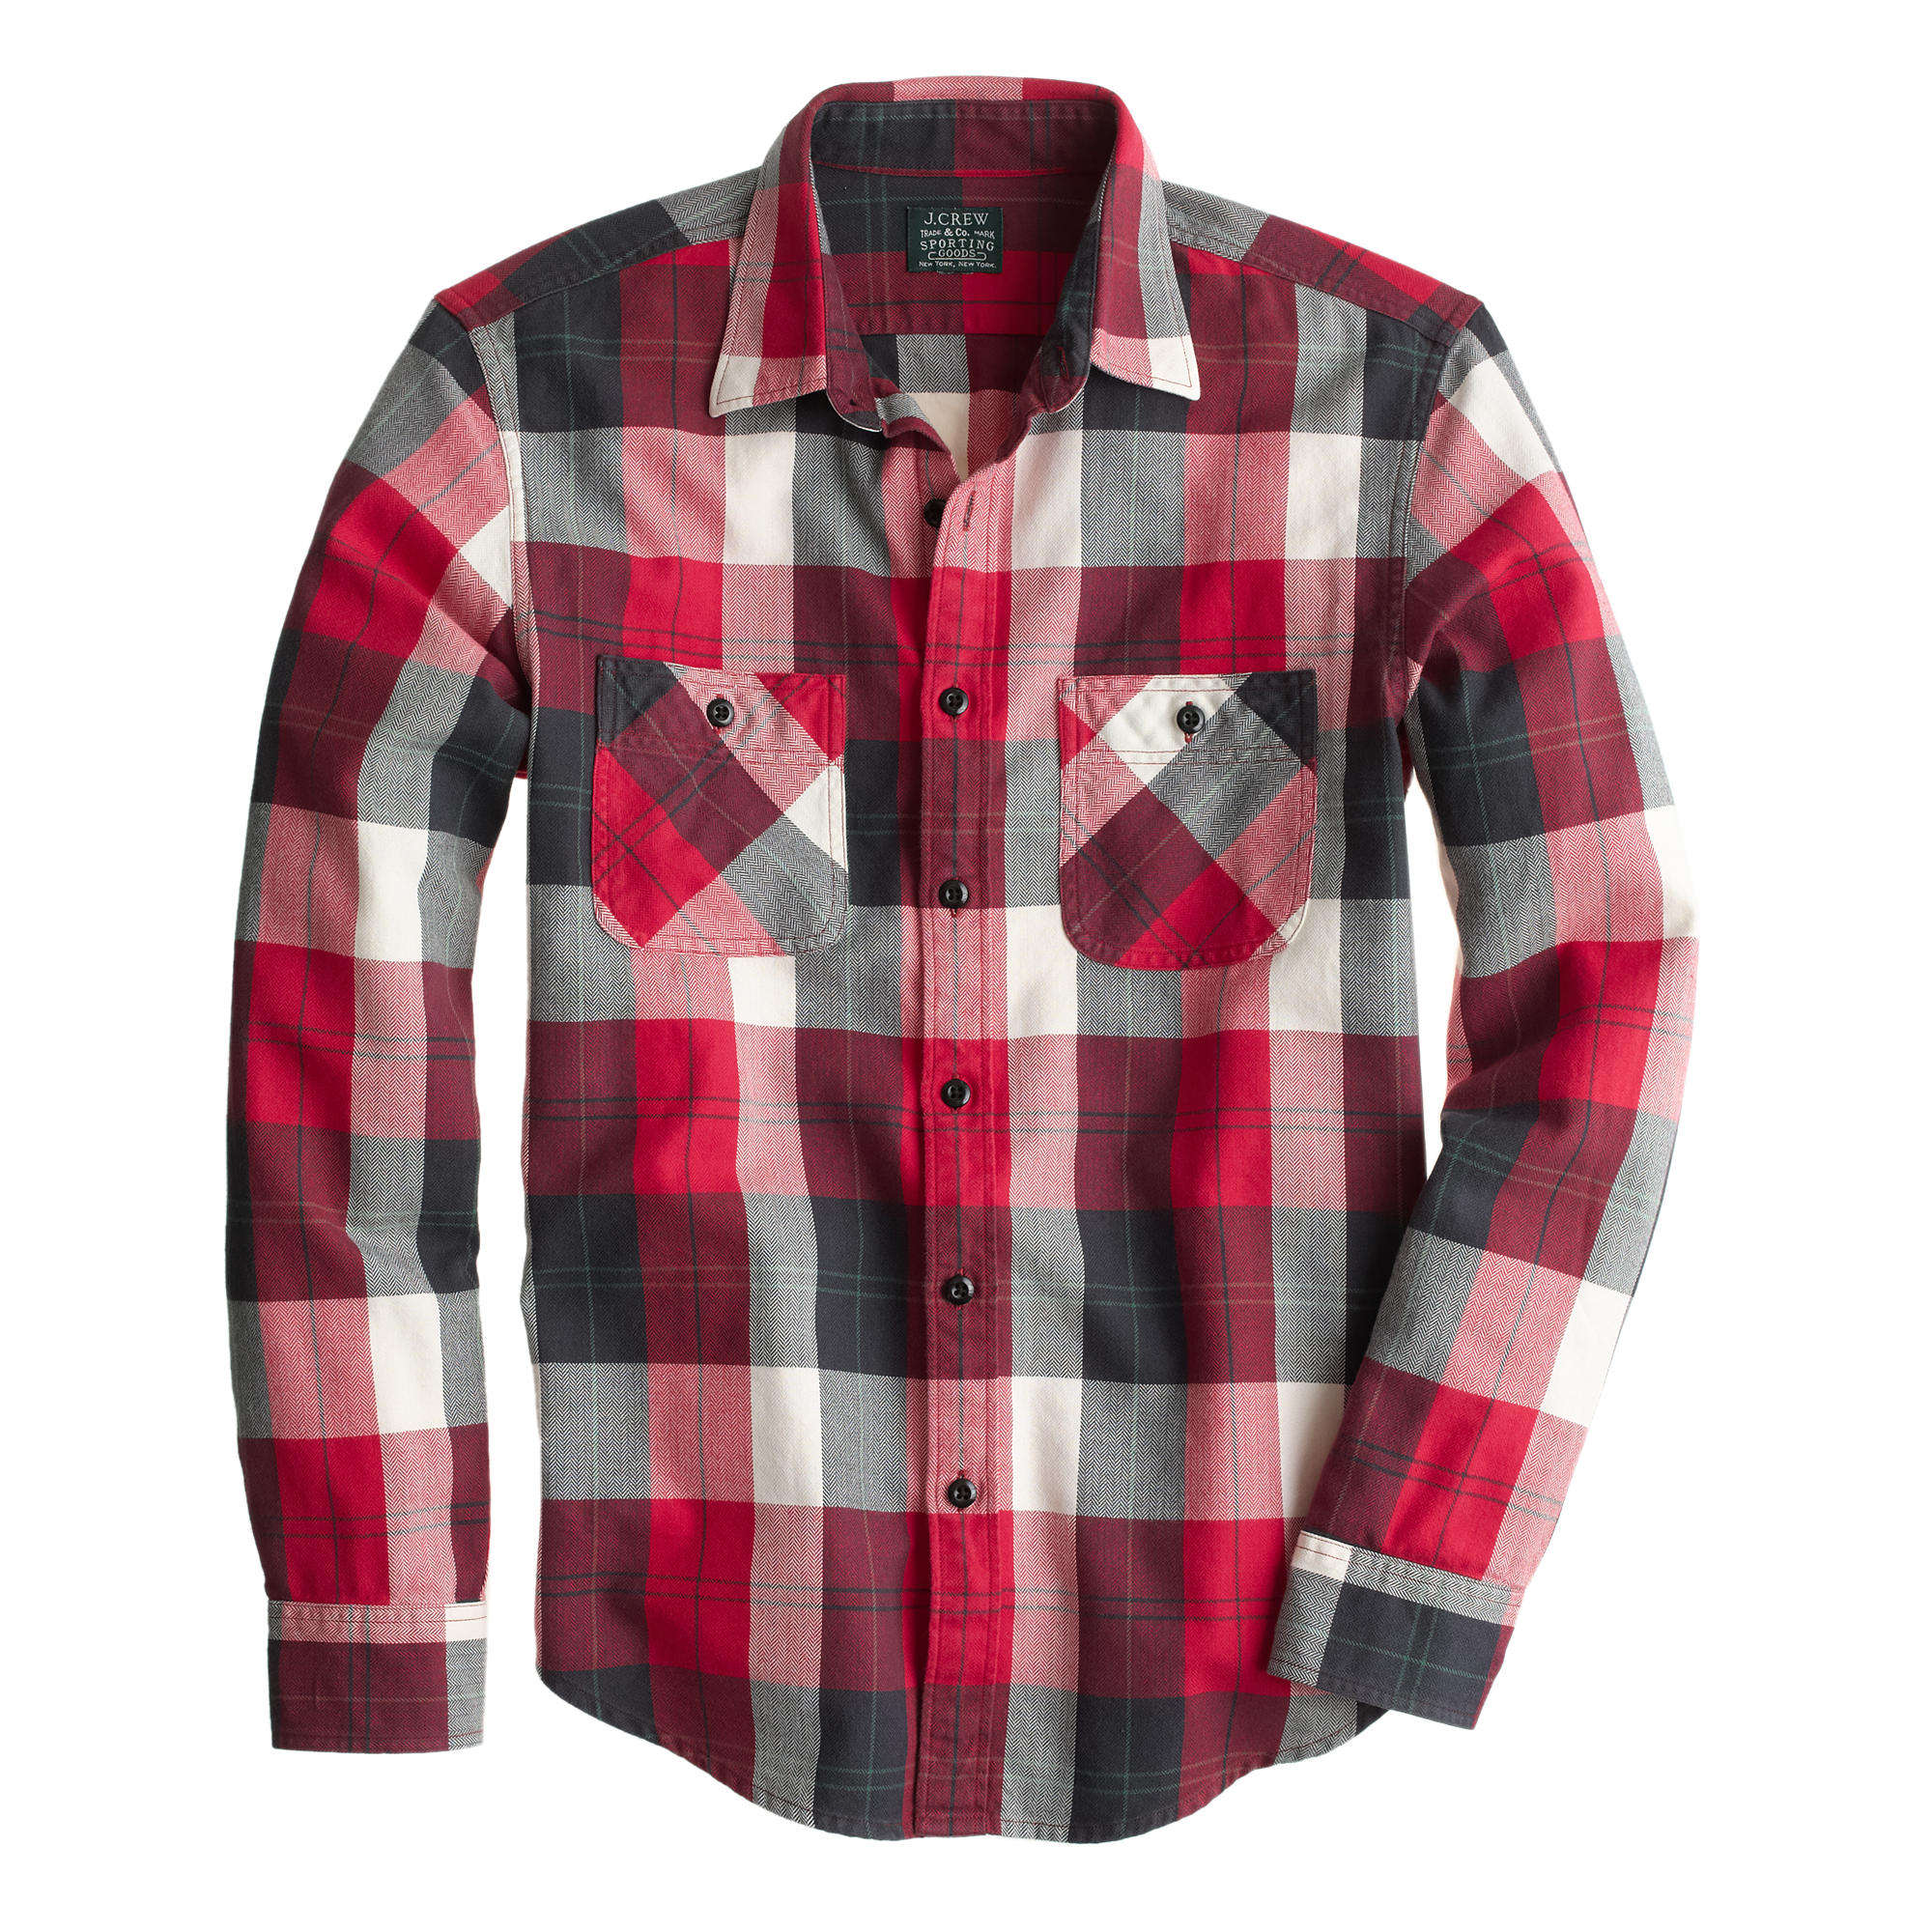 slim flannel shirt in chili powder herringbone plaid j